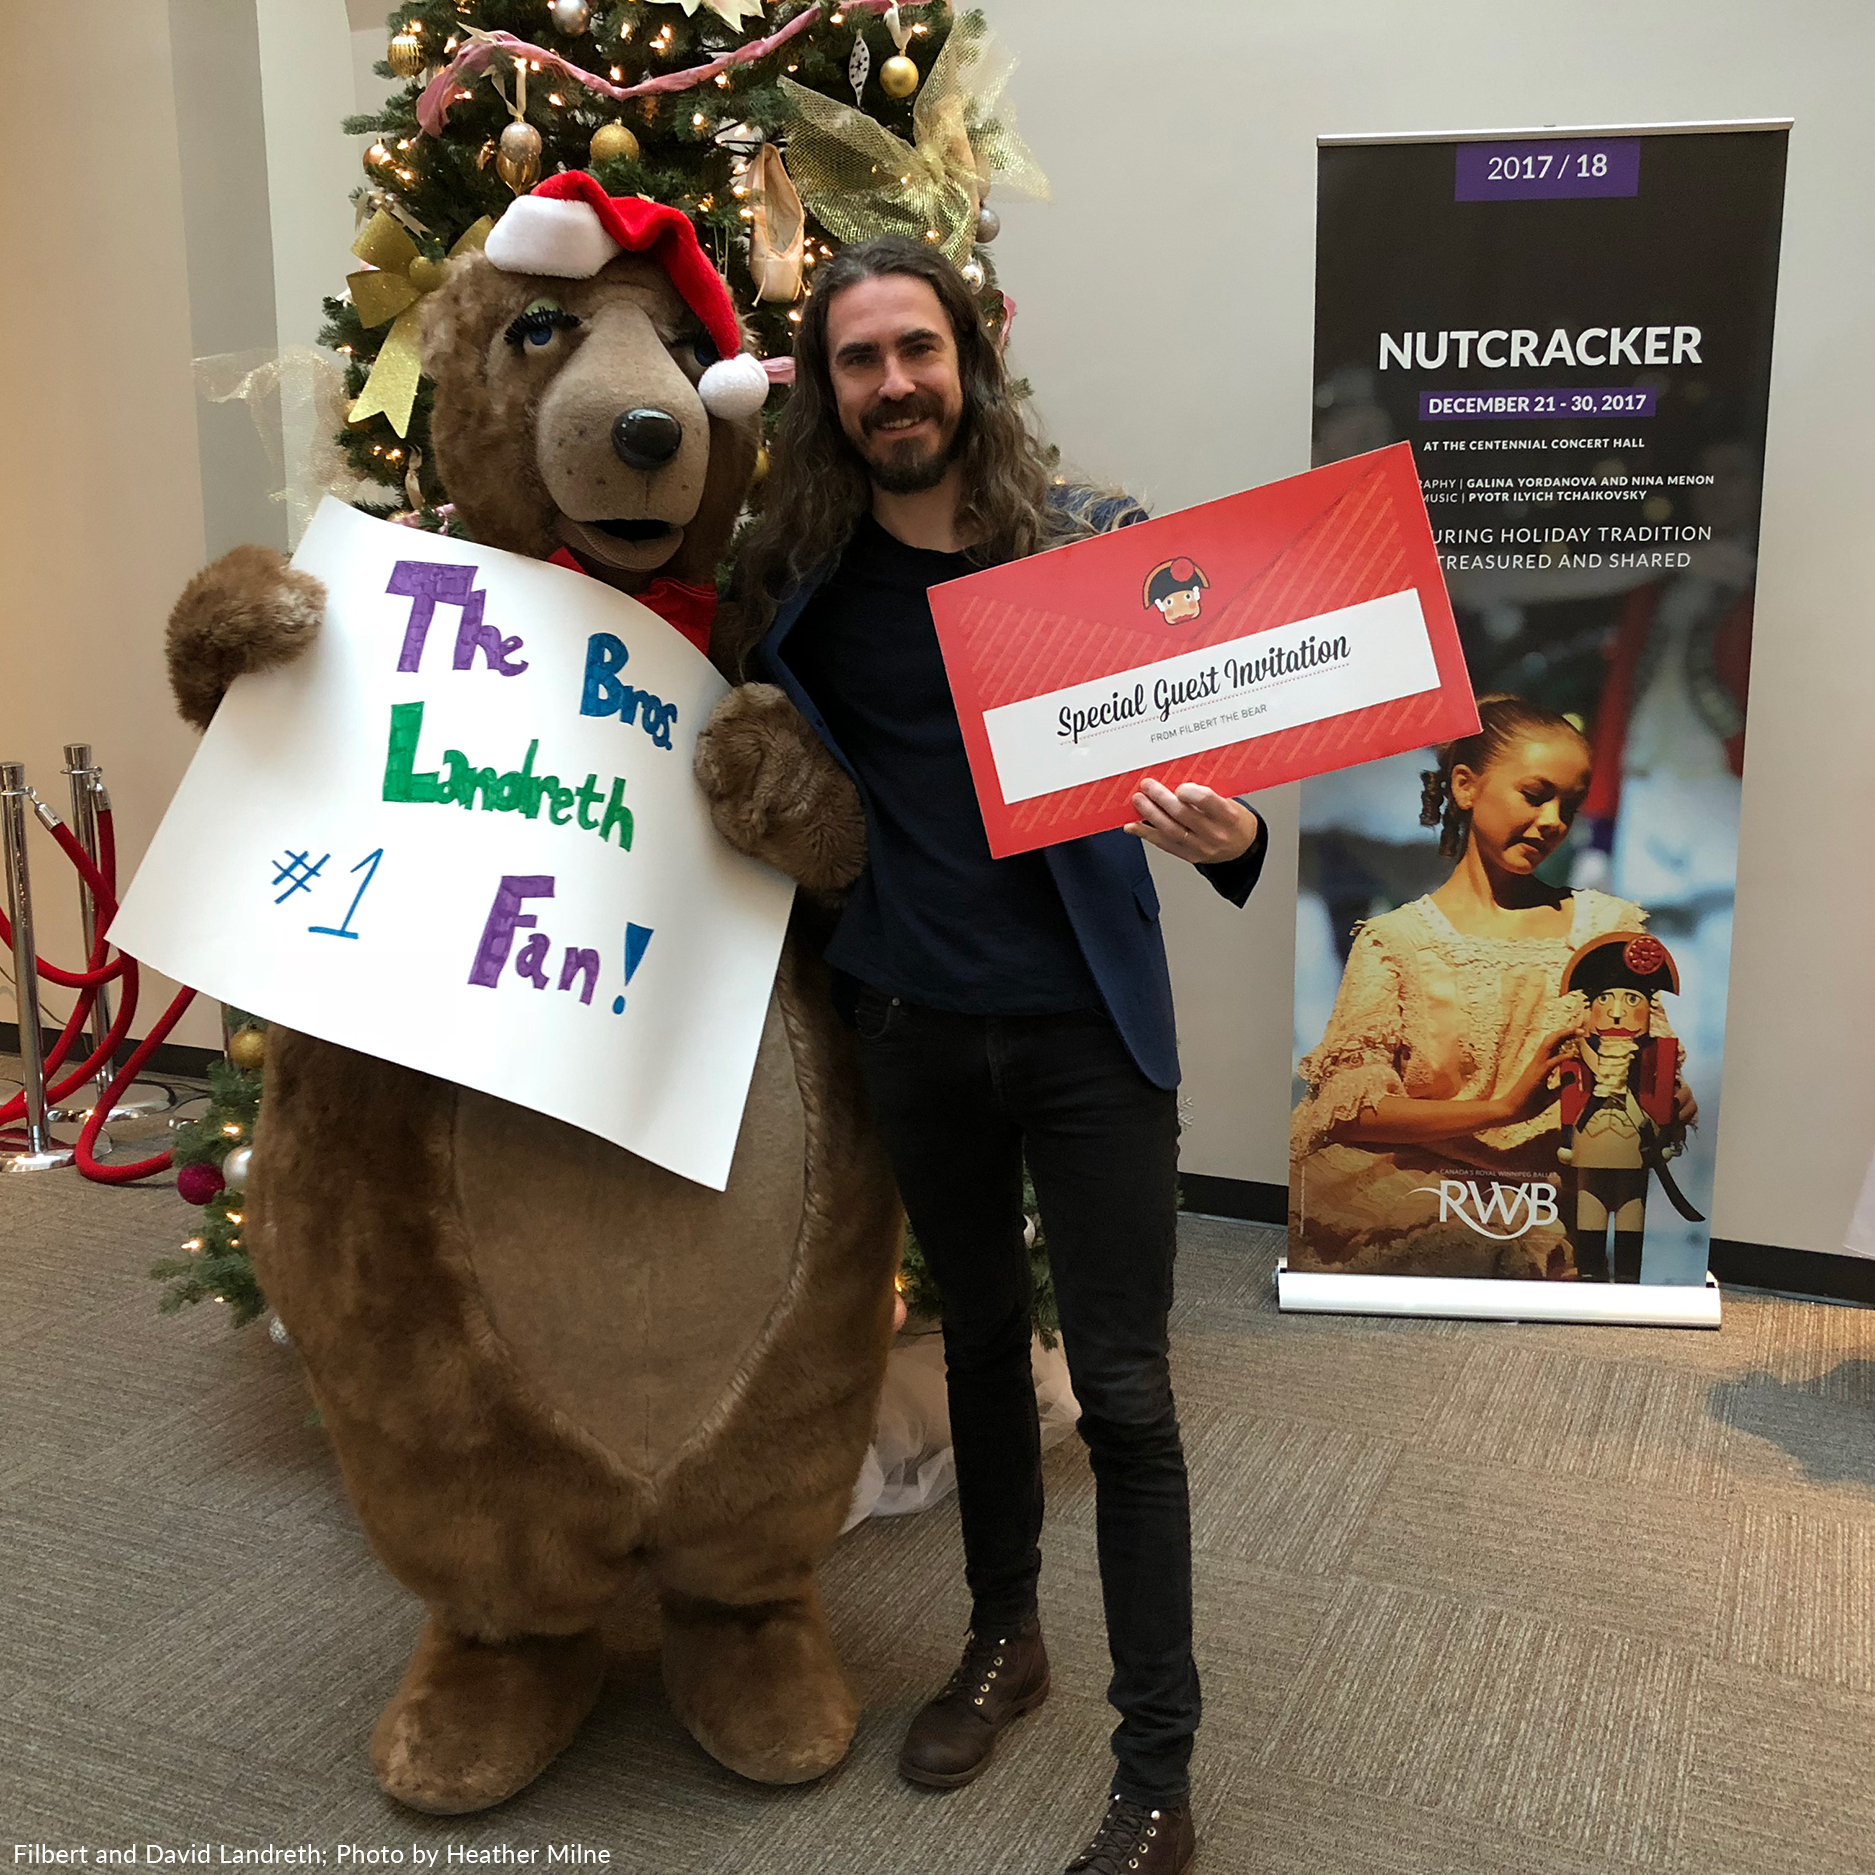 RWB's Filbert the Bear with David Landreth